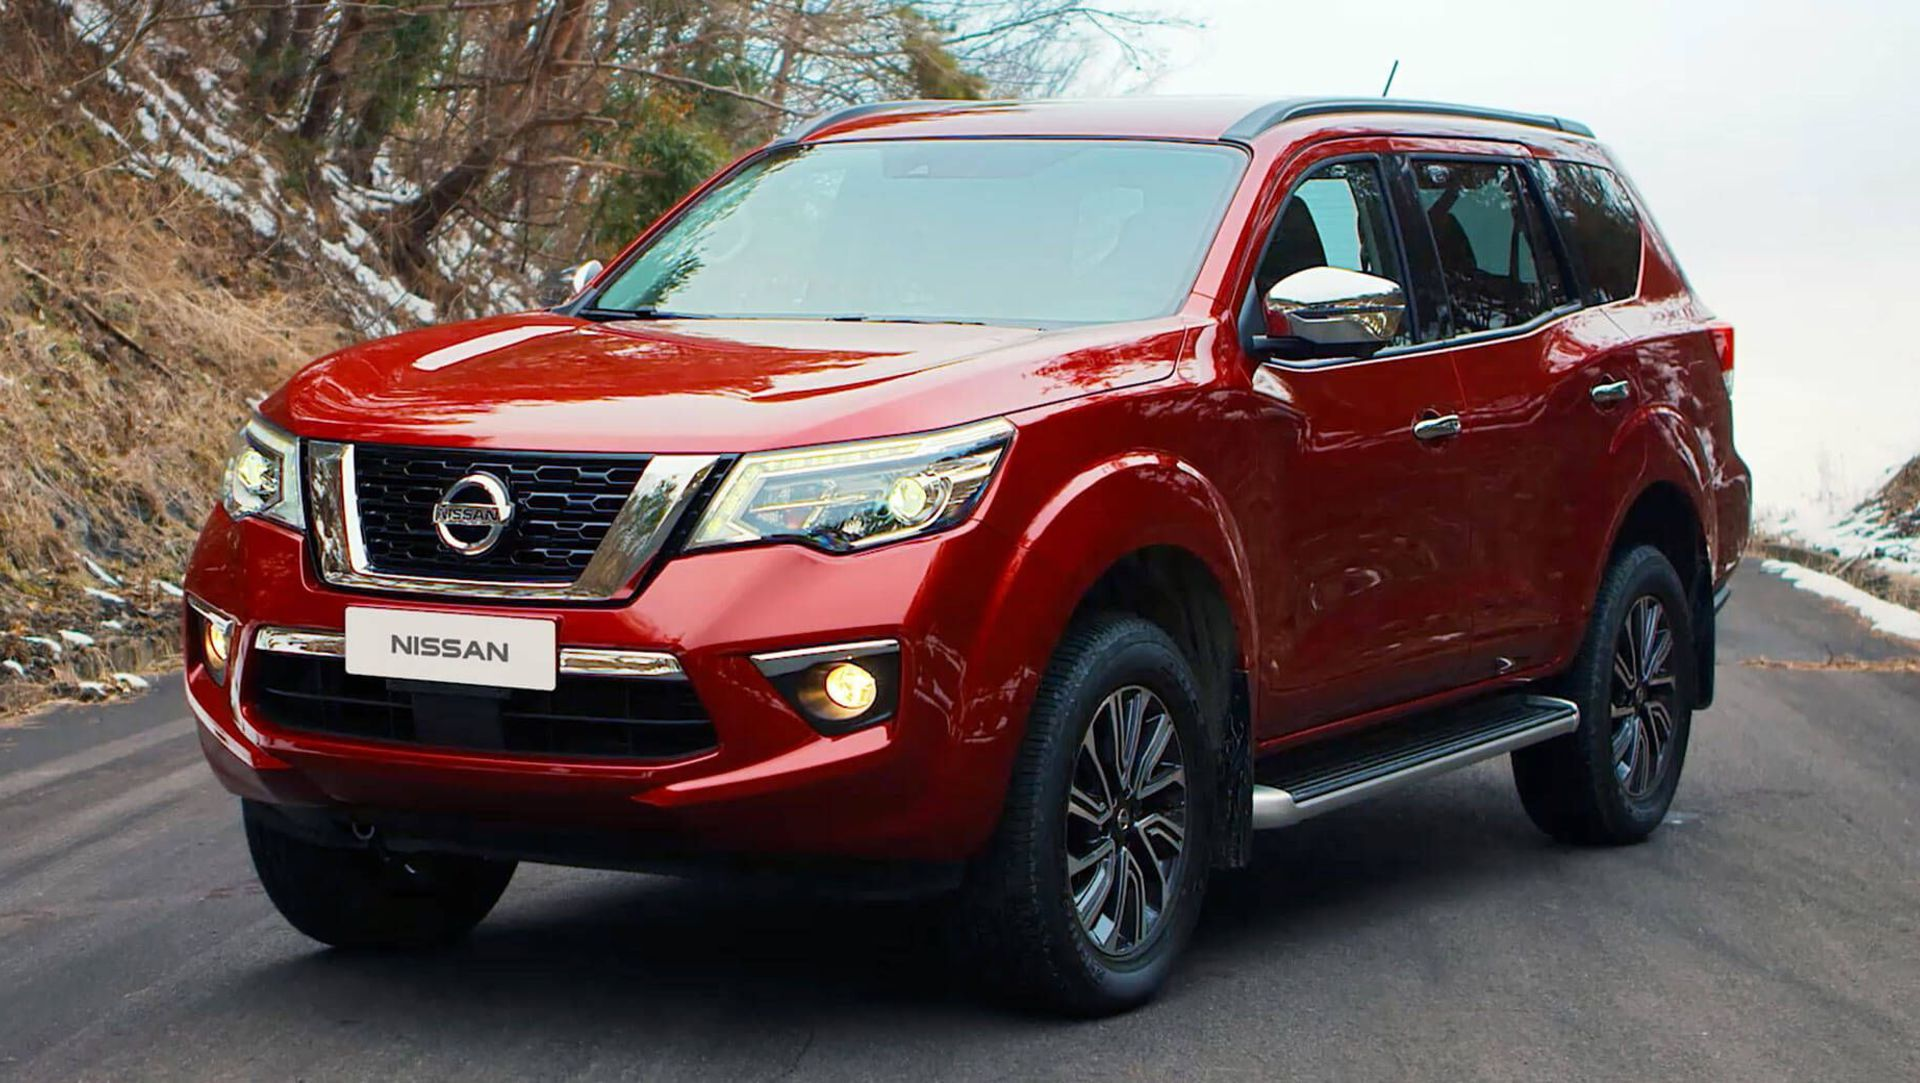 Nissan Terra Is A 181HP Body-On-Frame SUV That You Can\'t Have In ...